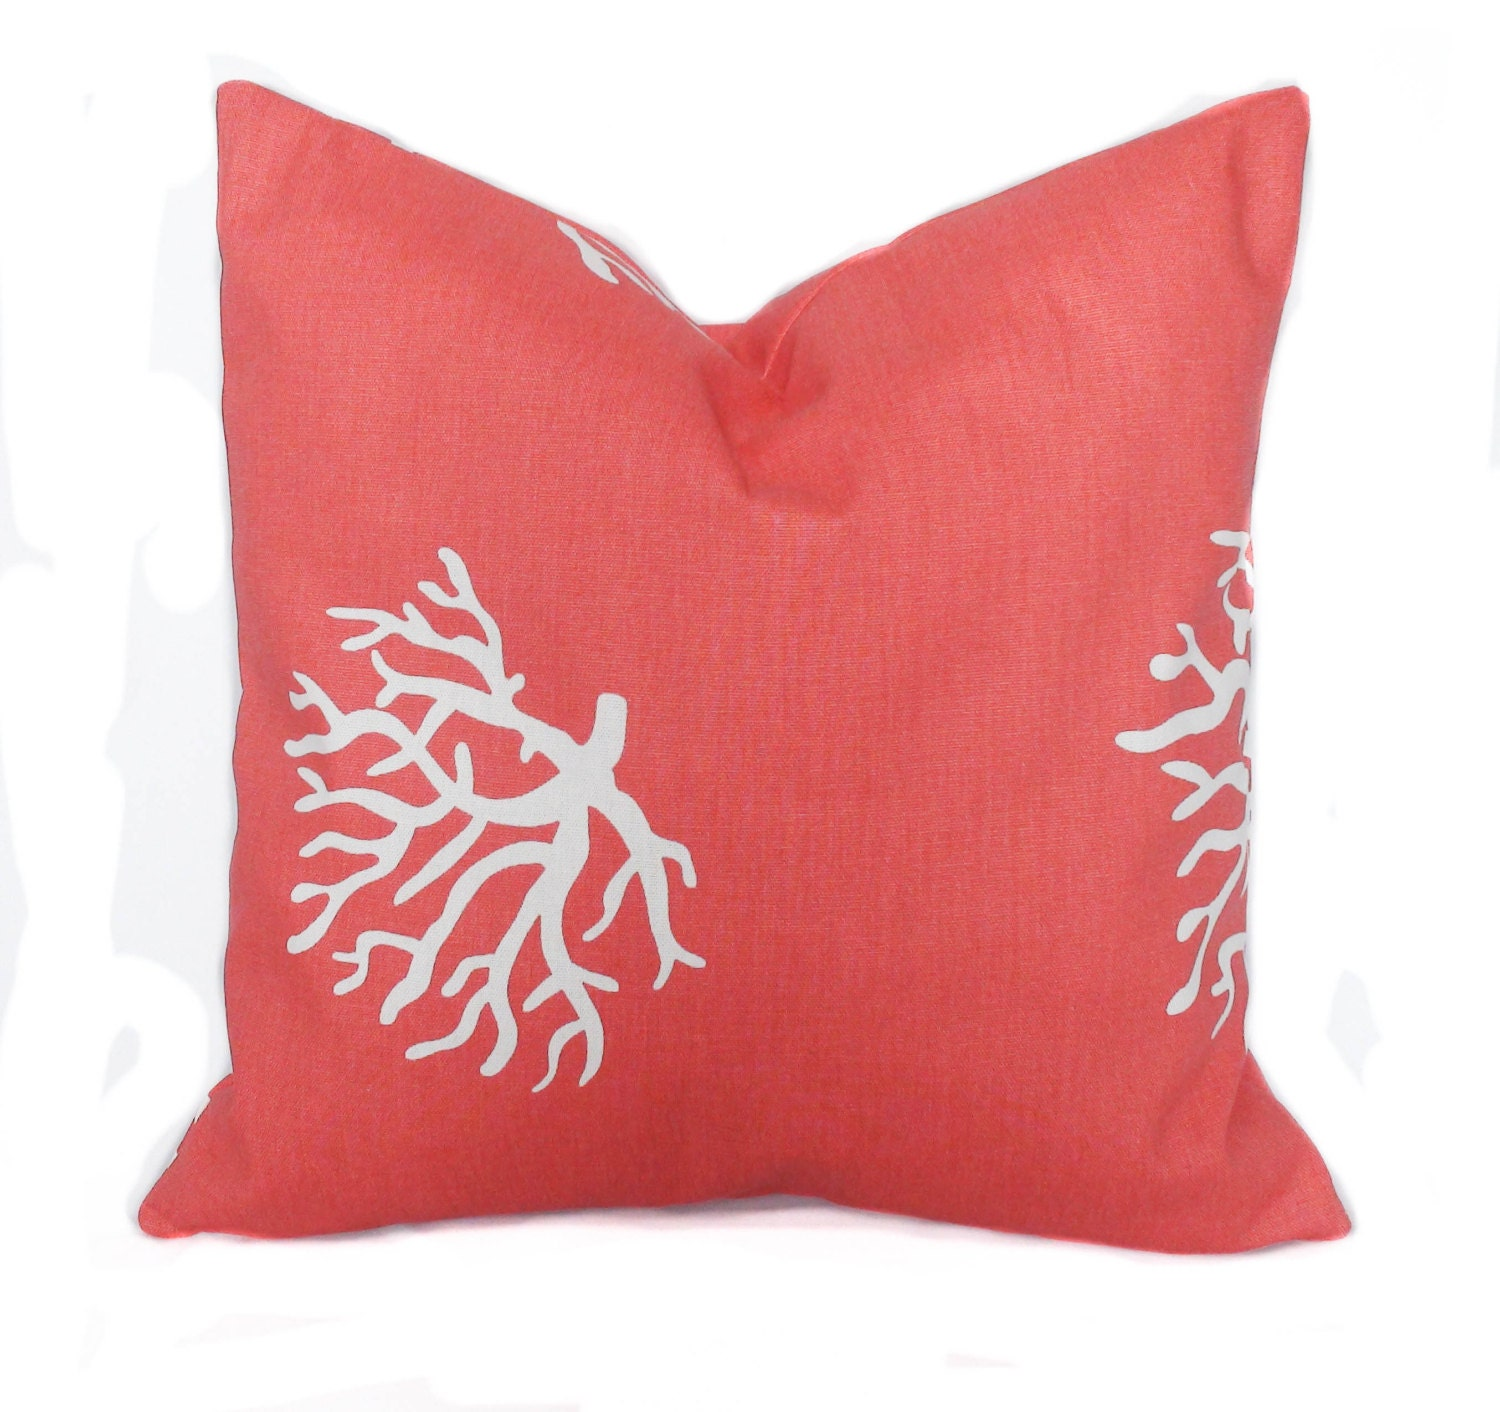 Throw Pillows Coral : Throw pillows Coral pillows 18x18 Pillow cover Decorative